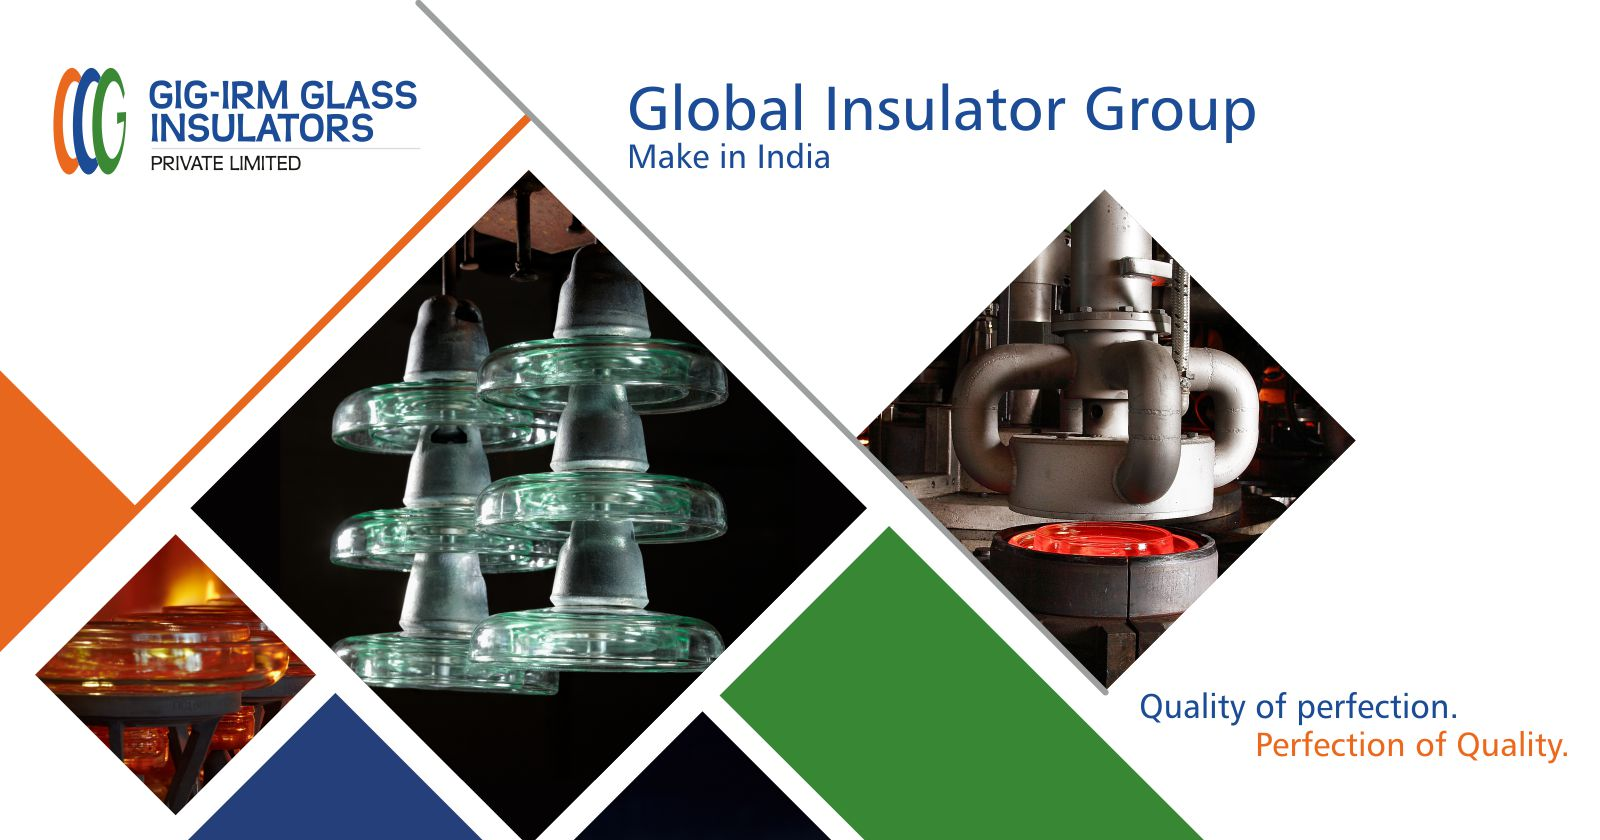 GIG-IRM manufactures the first Toughened Glass insulators in India